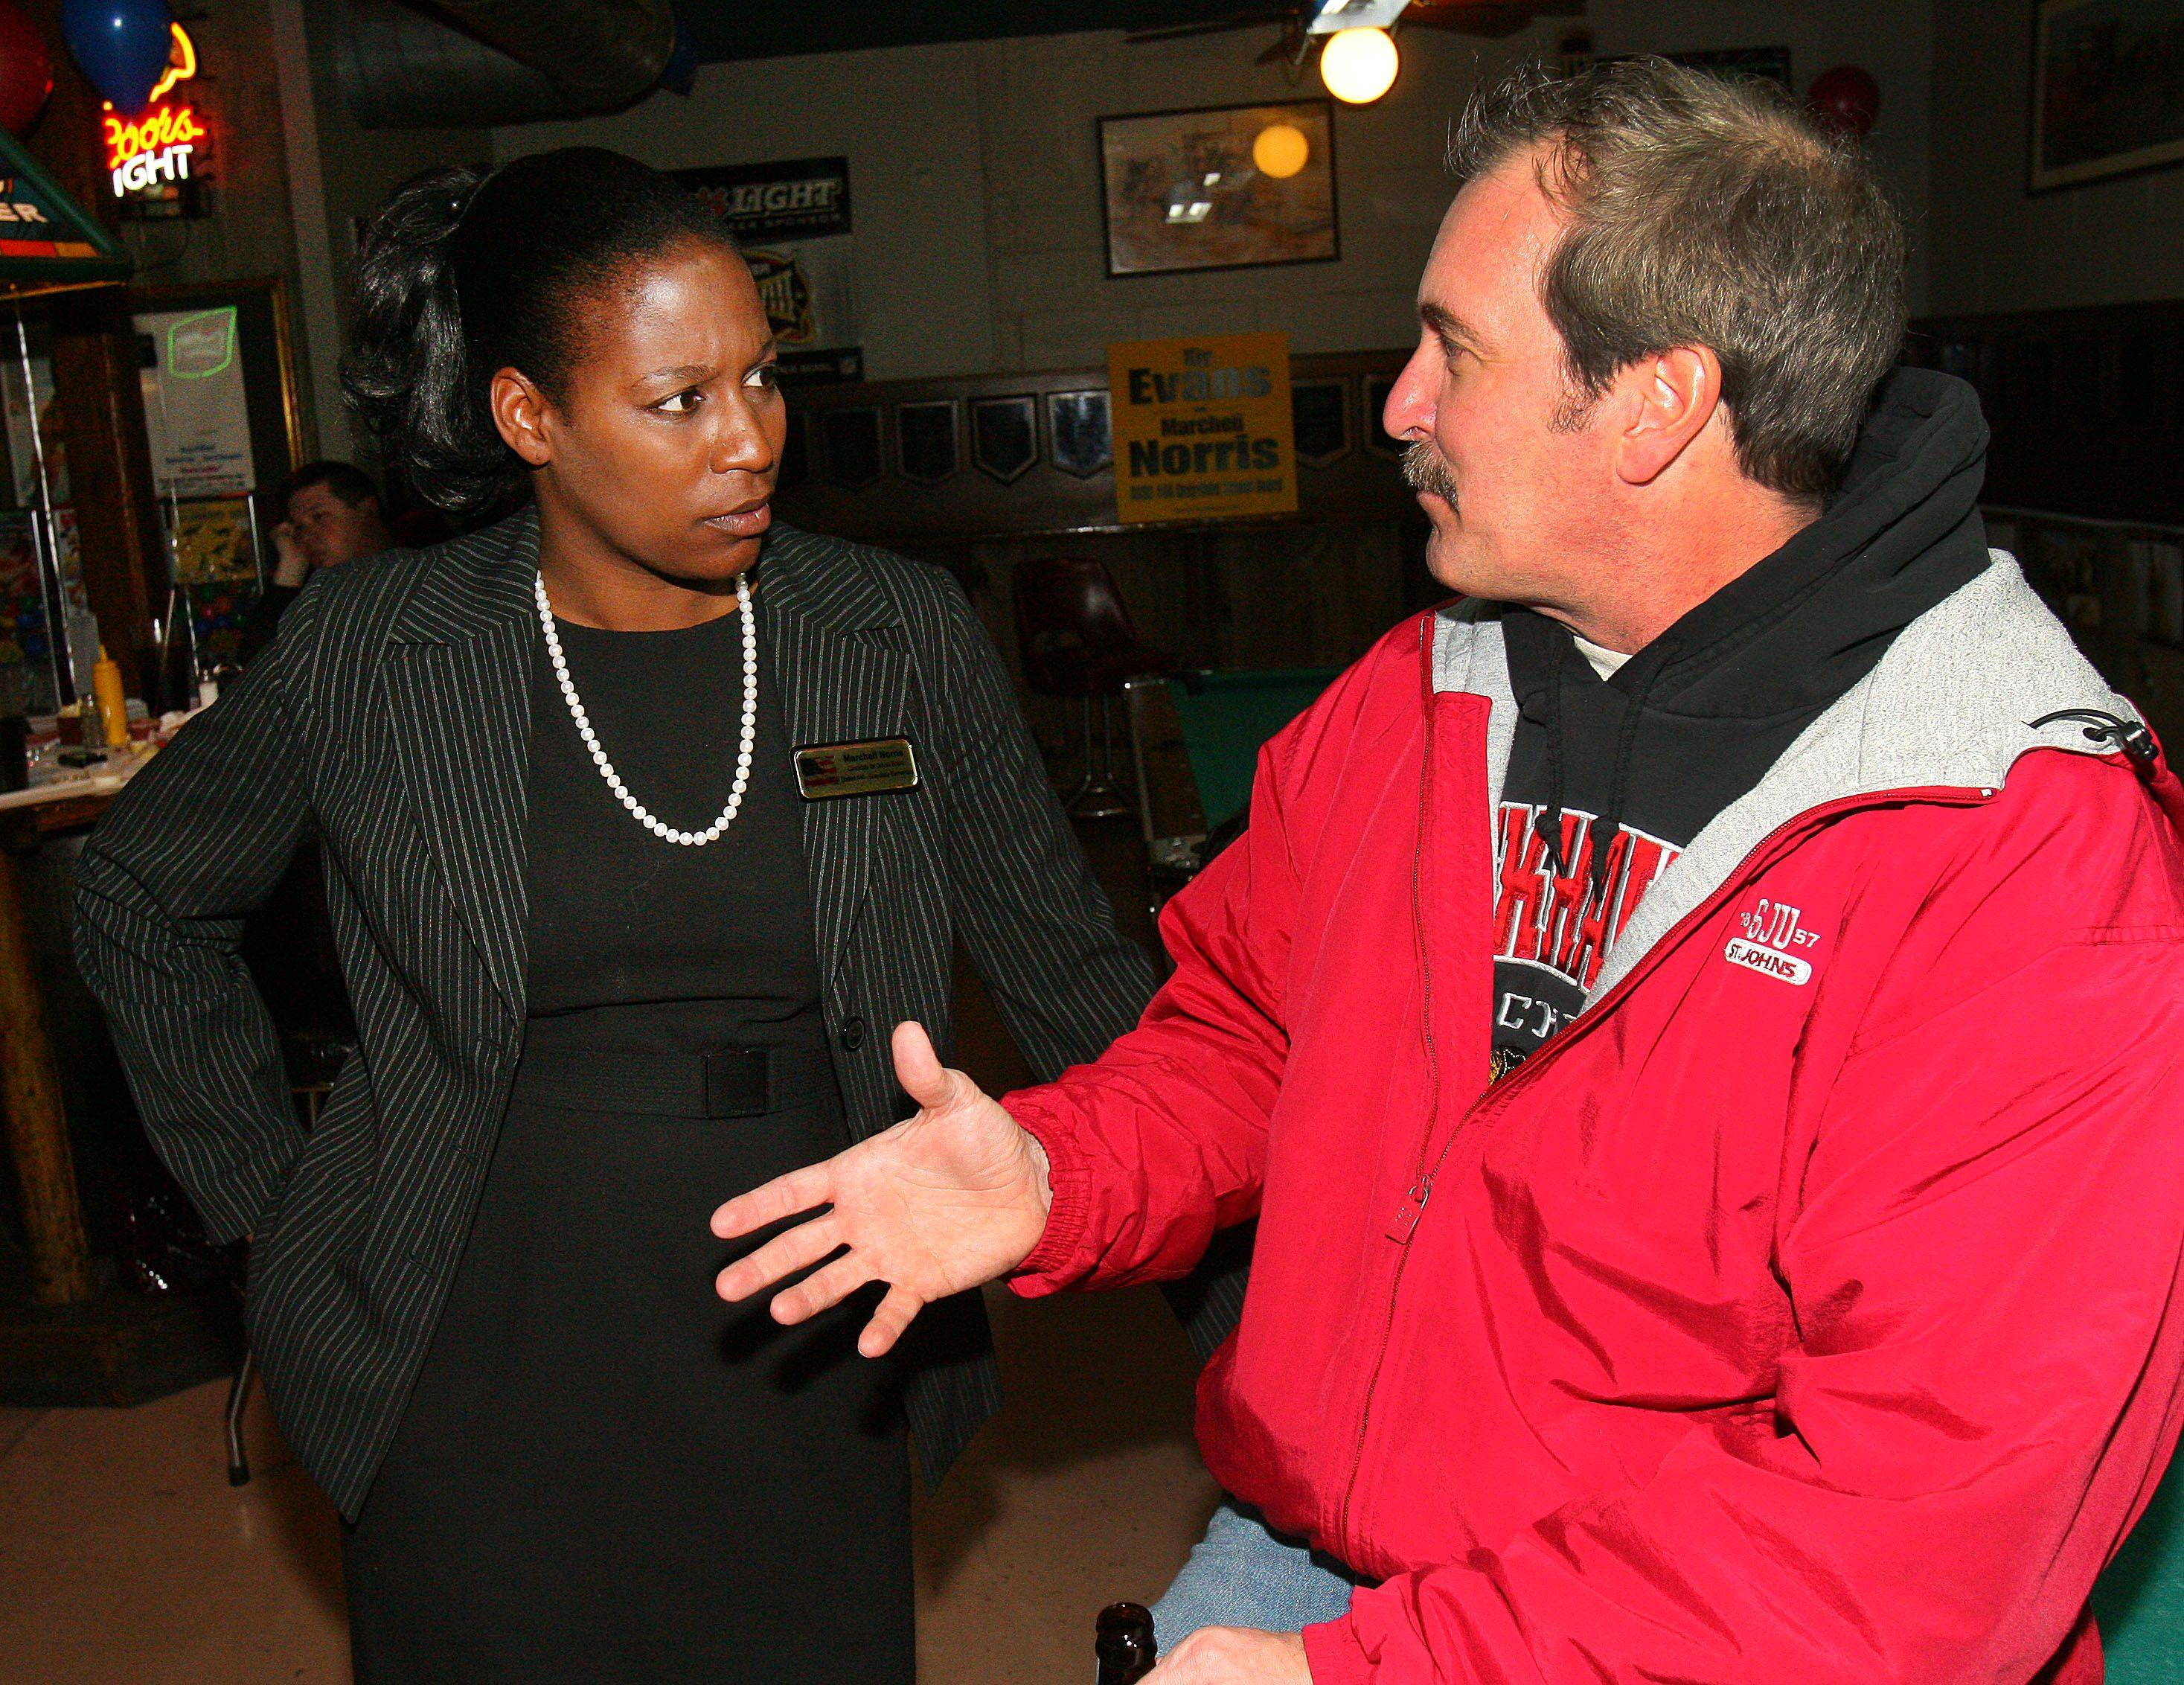 Grayslake District 46 school board candidate Marchell Norris, left, talks with Avon Township Trustee Chris Ditton Tuesday night at Last Chance Saloon in Grayslake.